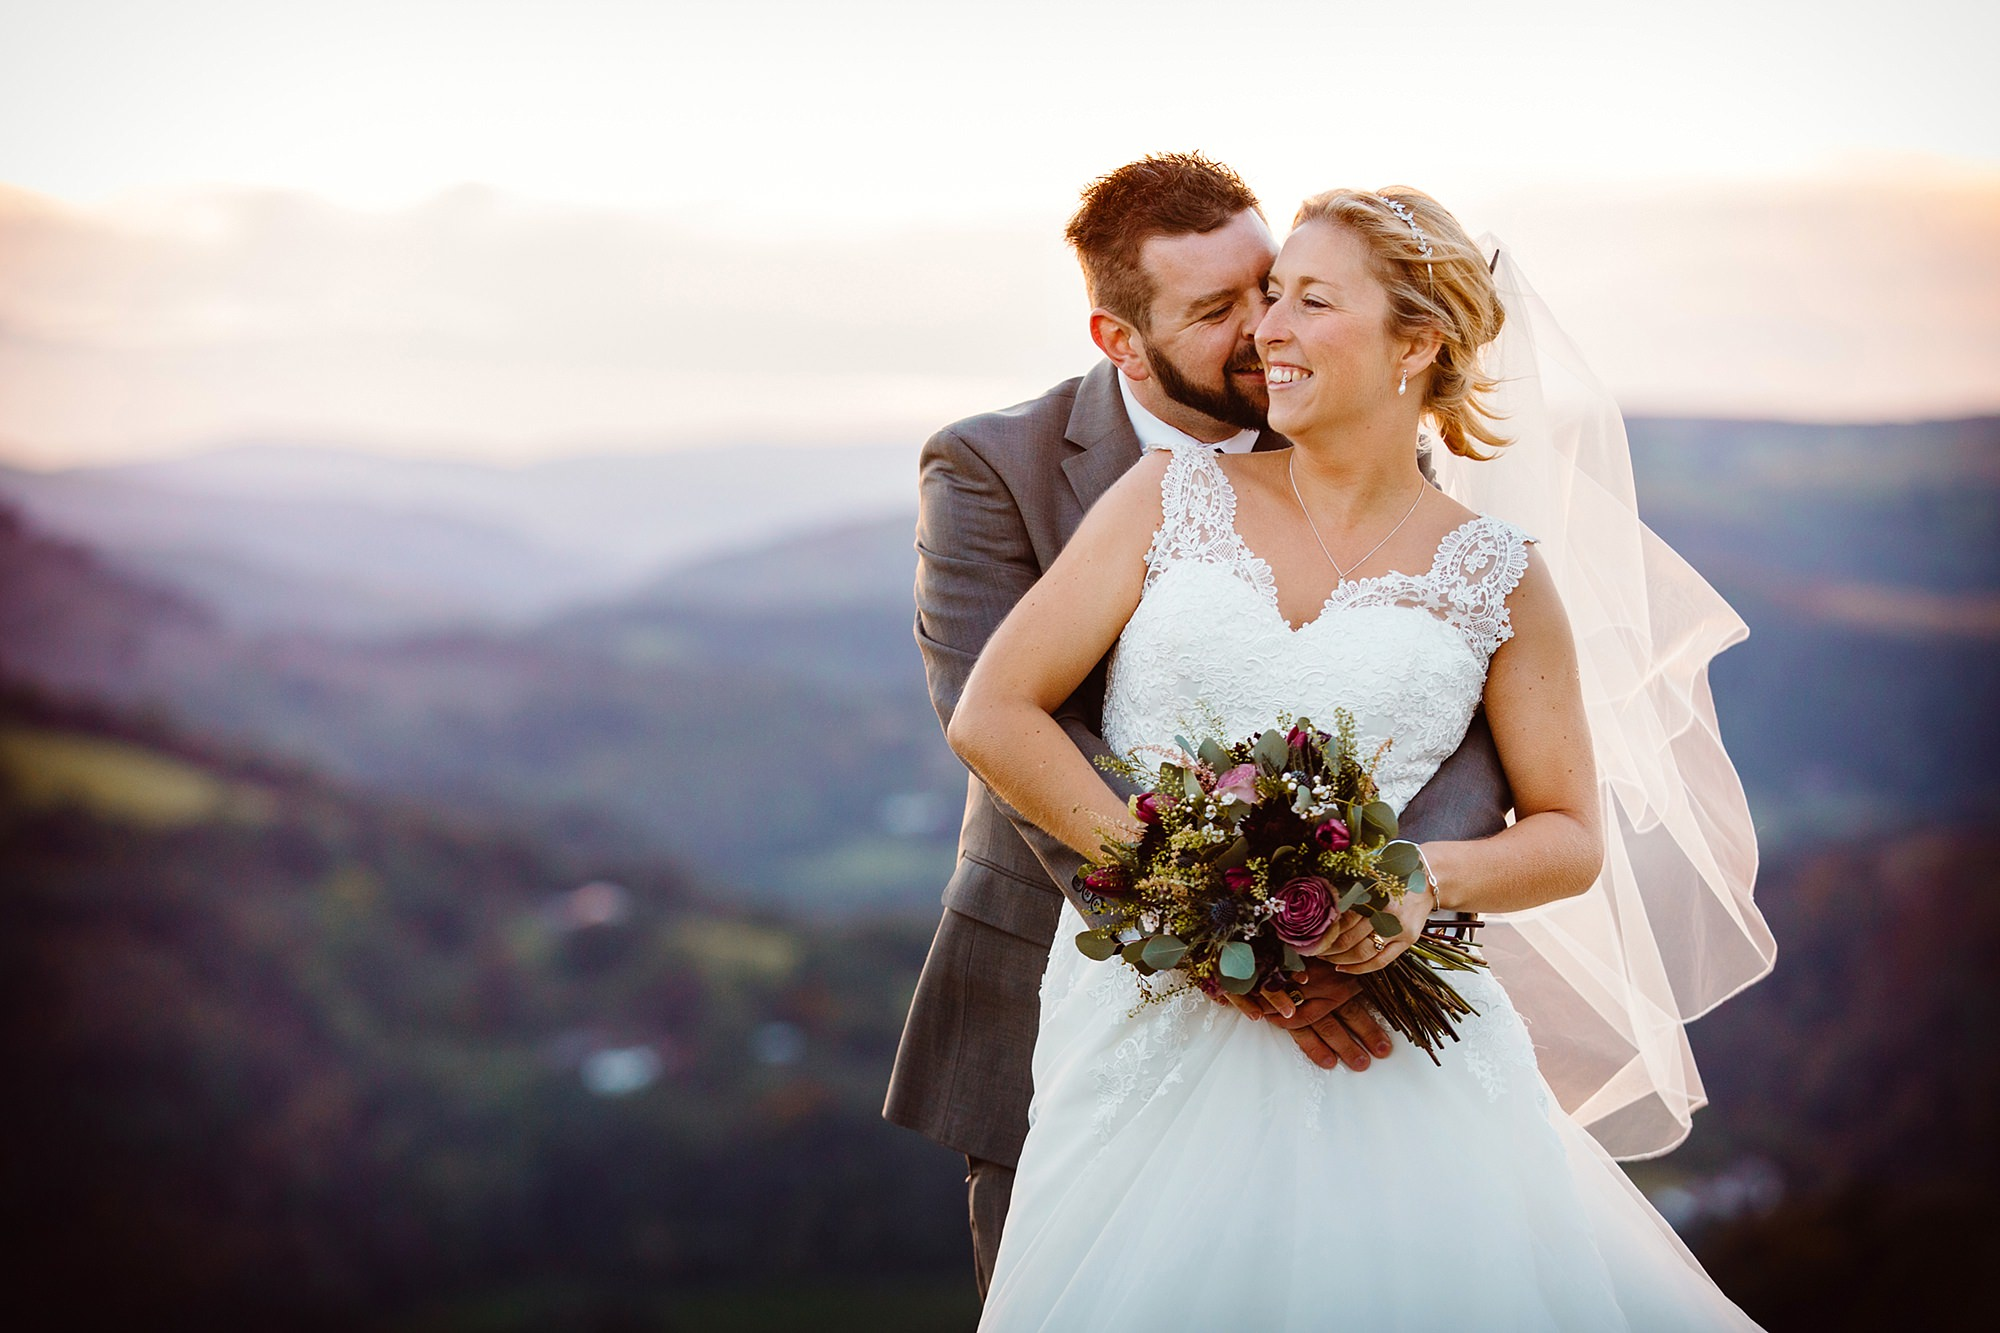 Castell dinas bran wedding photography portrait of groom hugging bride and laughing